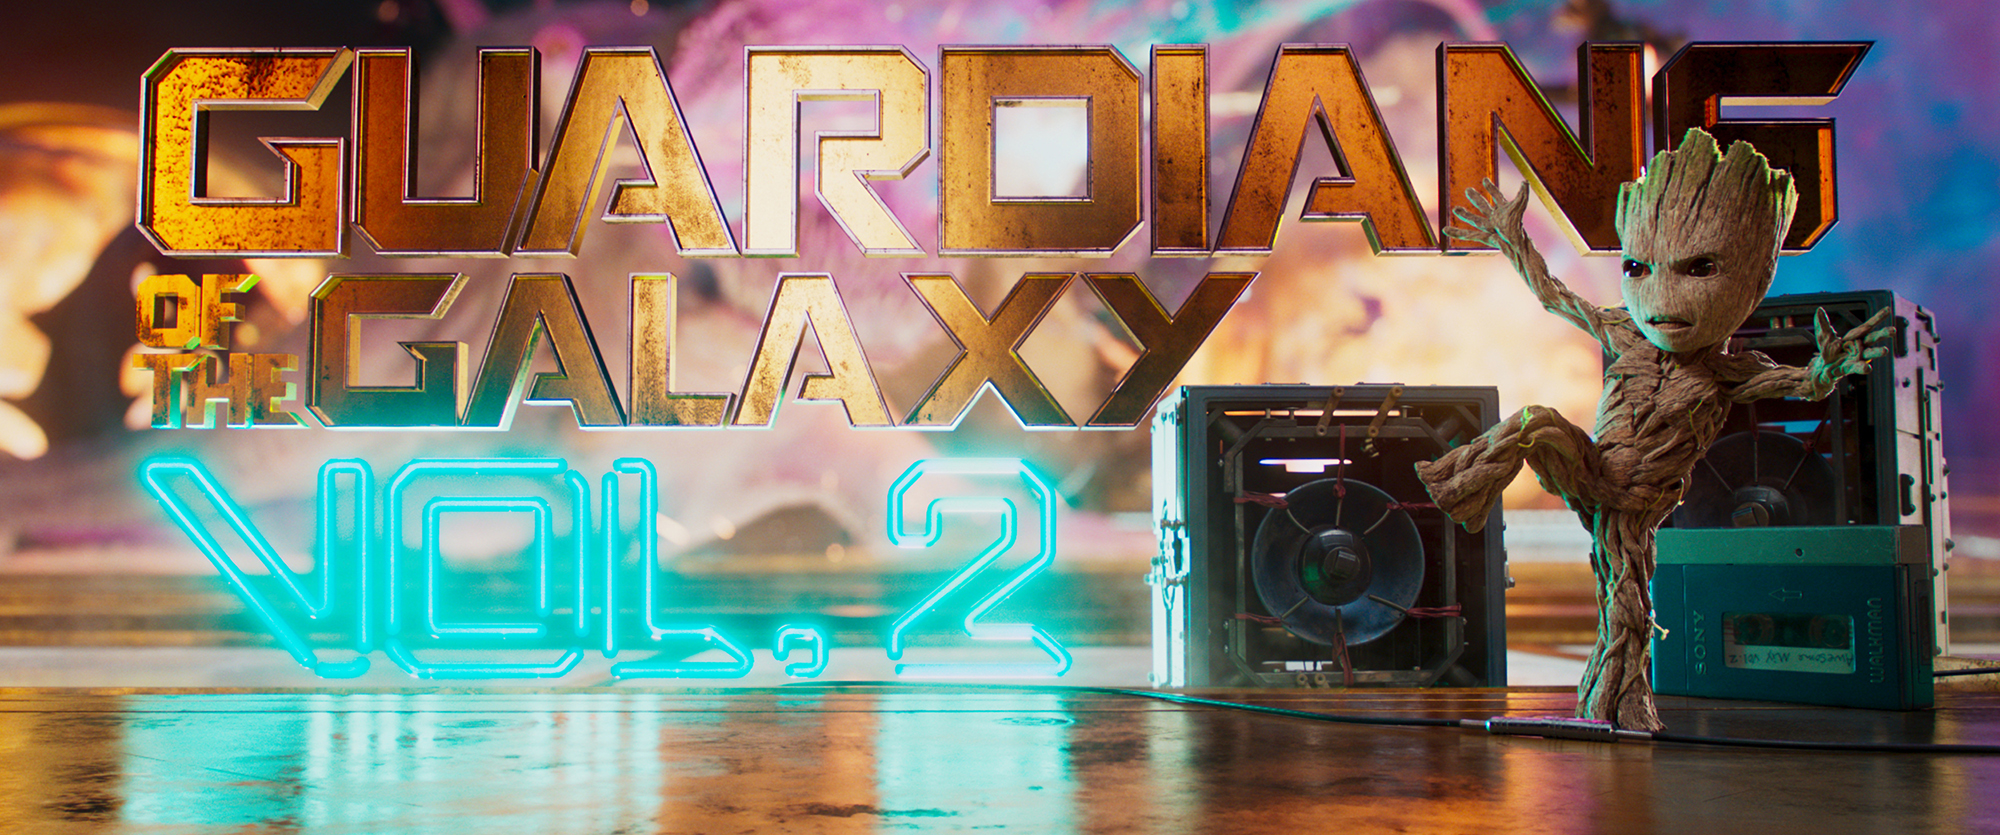 A Guardians of the Galaxy title graphic.